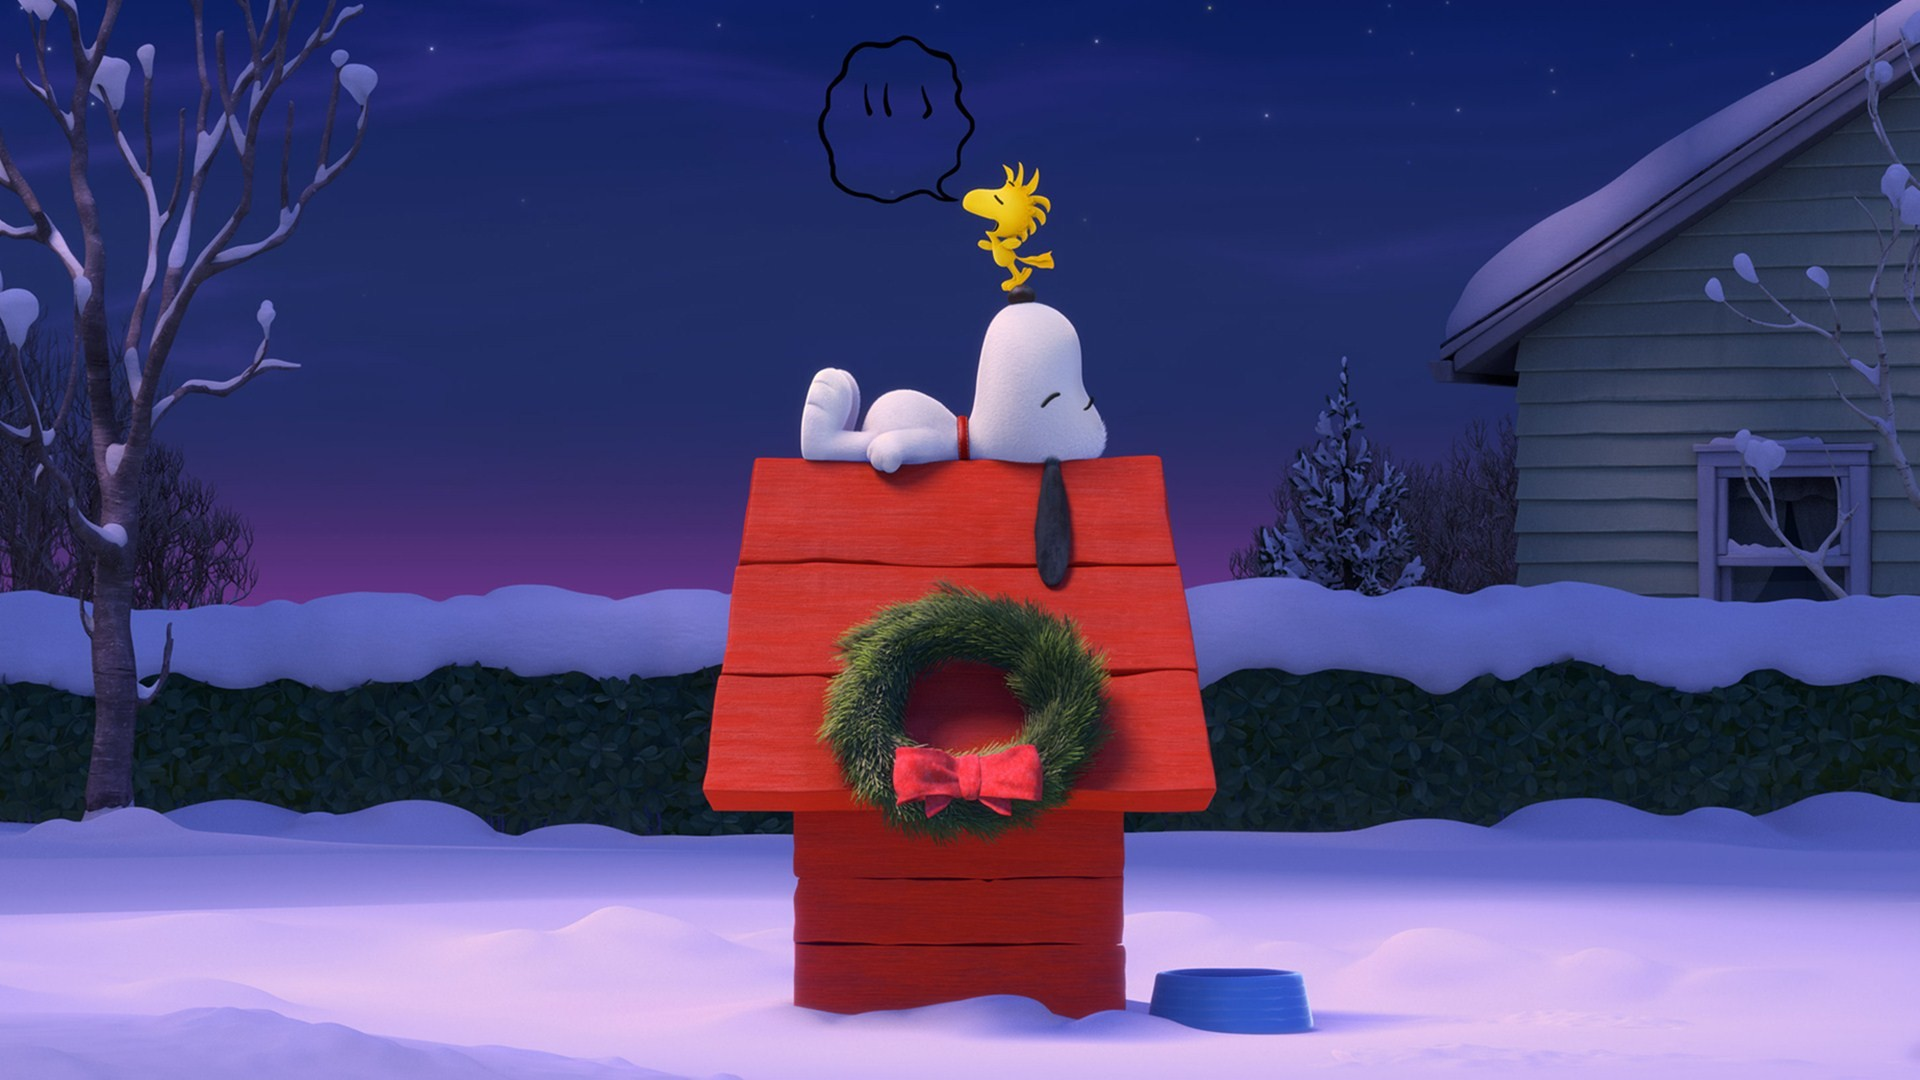 charlie brown christmas tree wallpaper (43+ pictures)